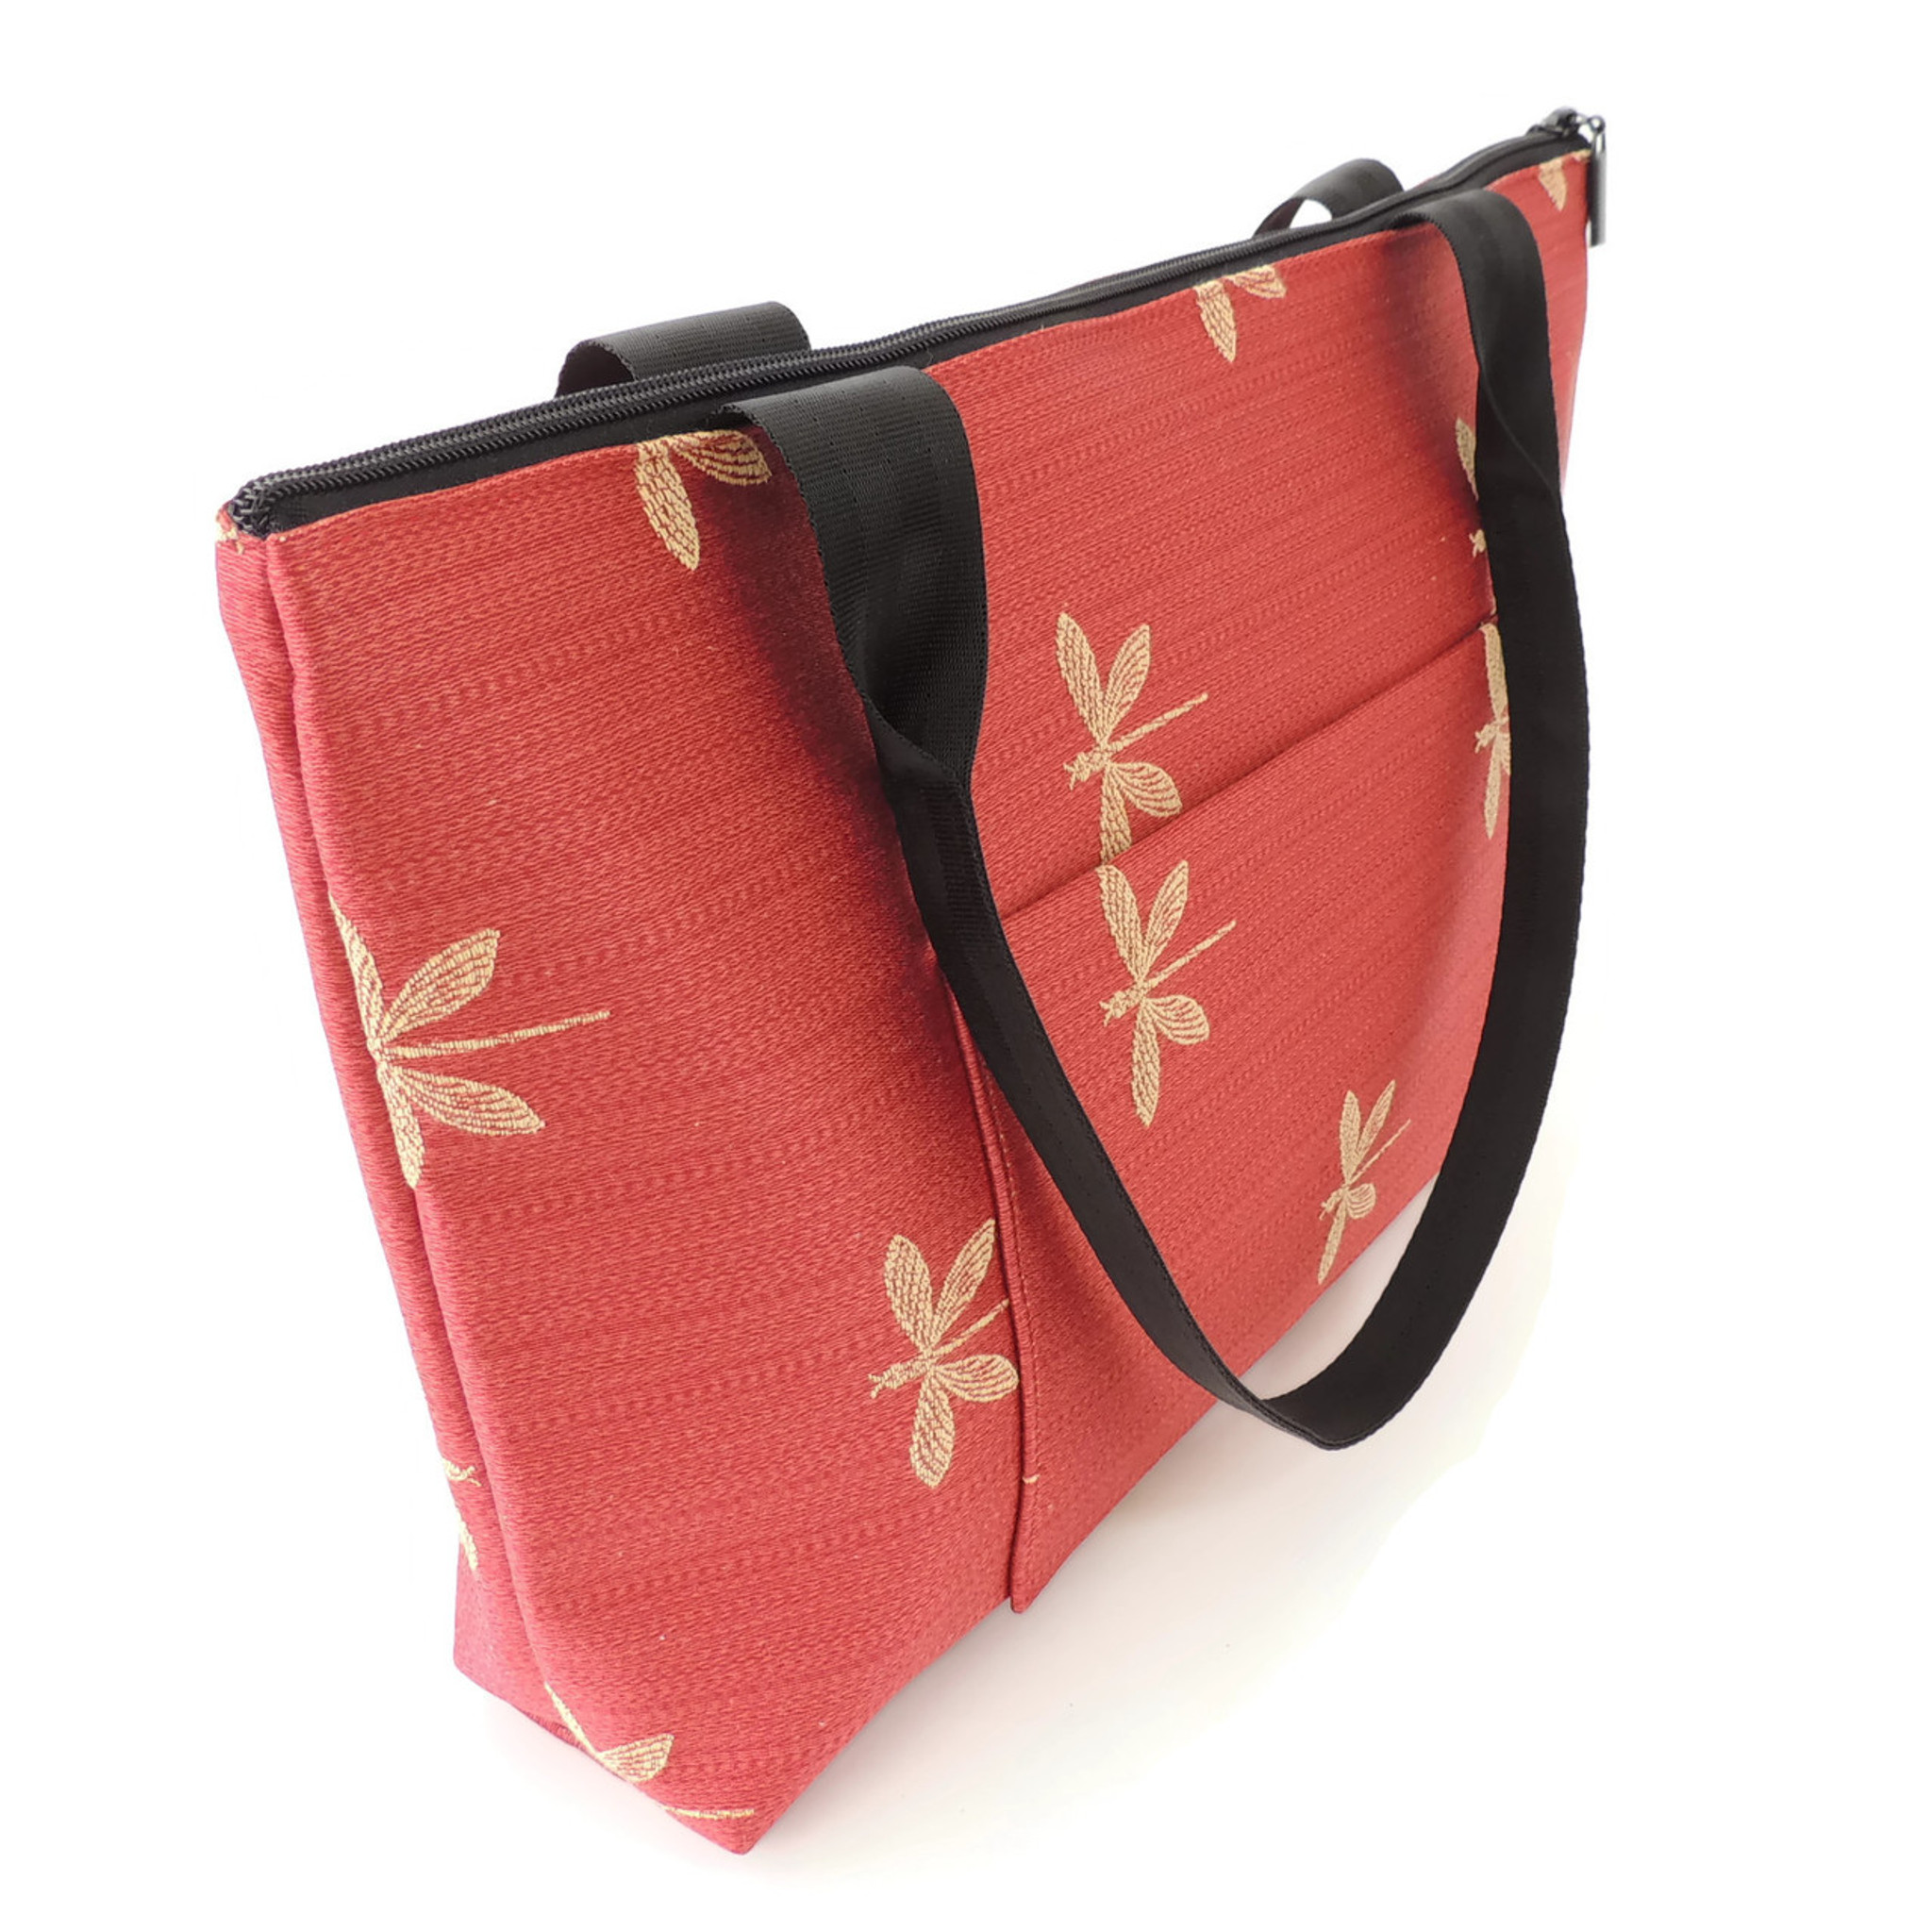 Ruby Tote in Dragonfly Rose